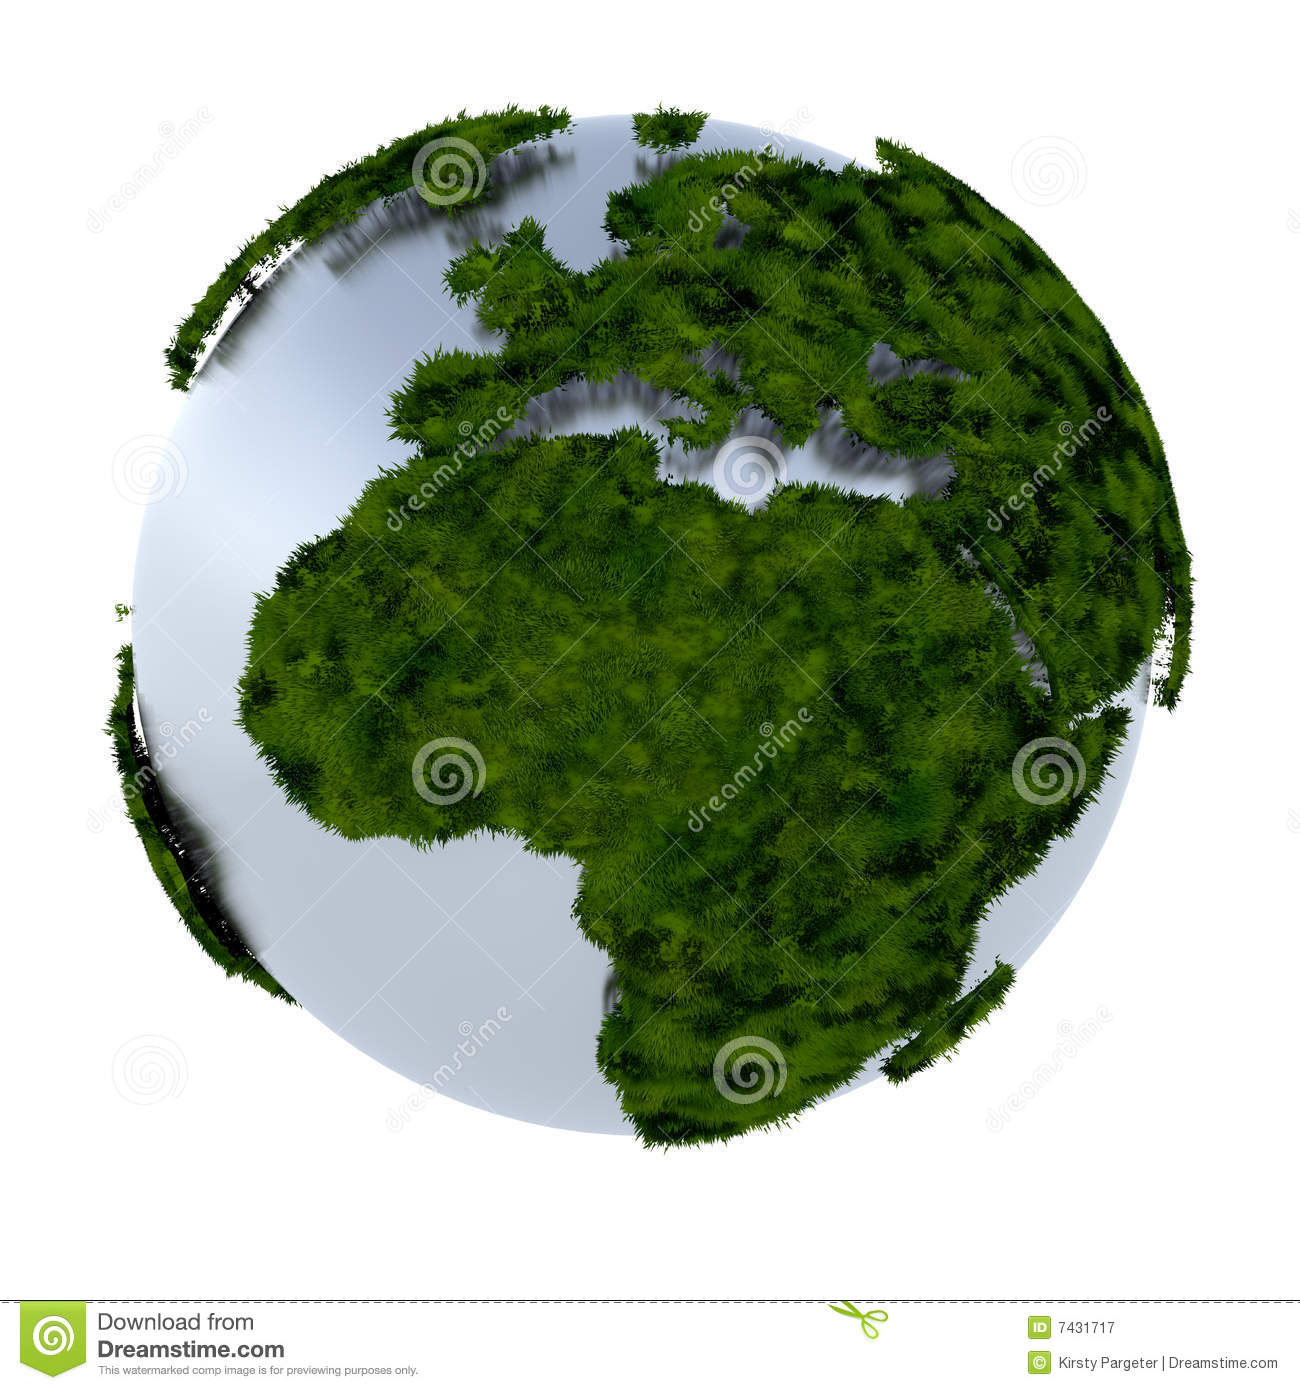 Green Earth Royalty Free Stock Photography - Image: 7431717